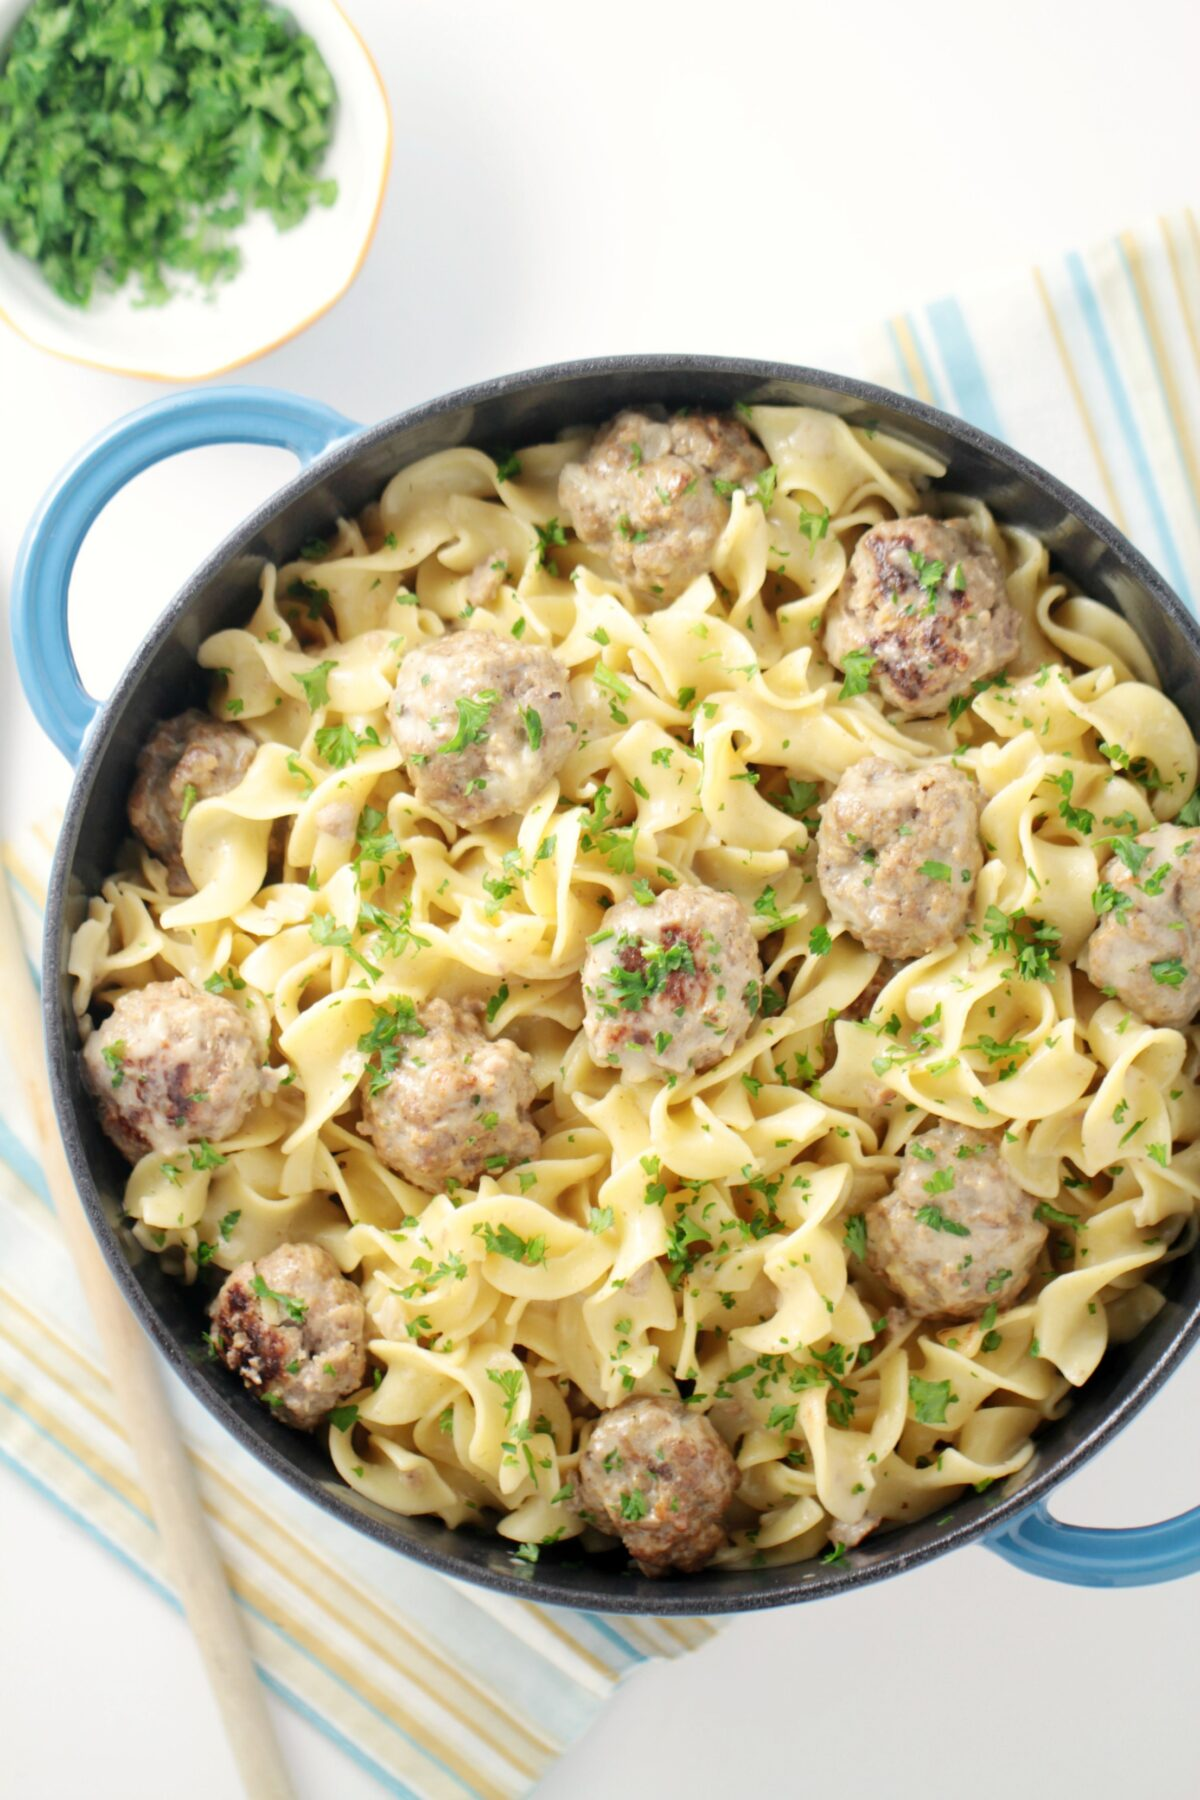 Easy One-Pot Swedish Meatballs with Egg Noodles - your family will love this swedish inspired family meal.